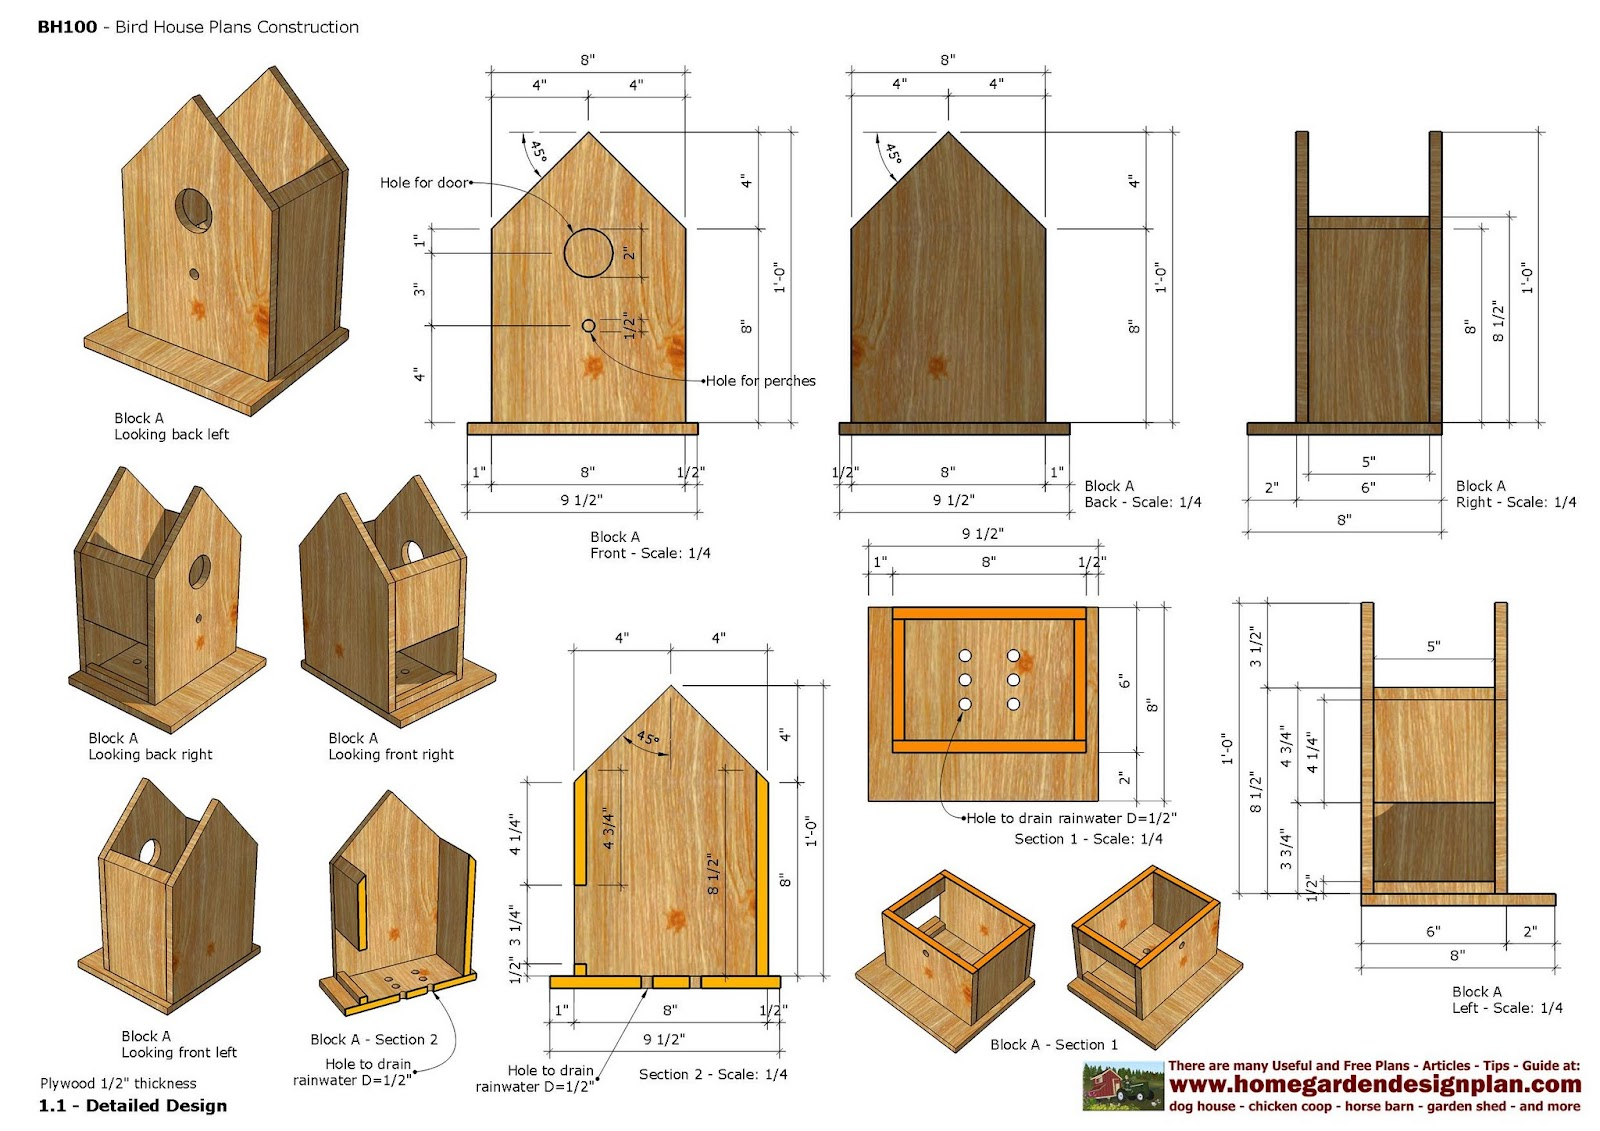 Home garden plans bh bird house plans construction Plans houses with photos